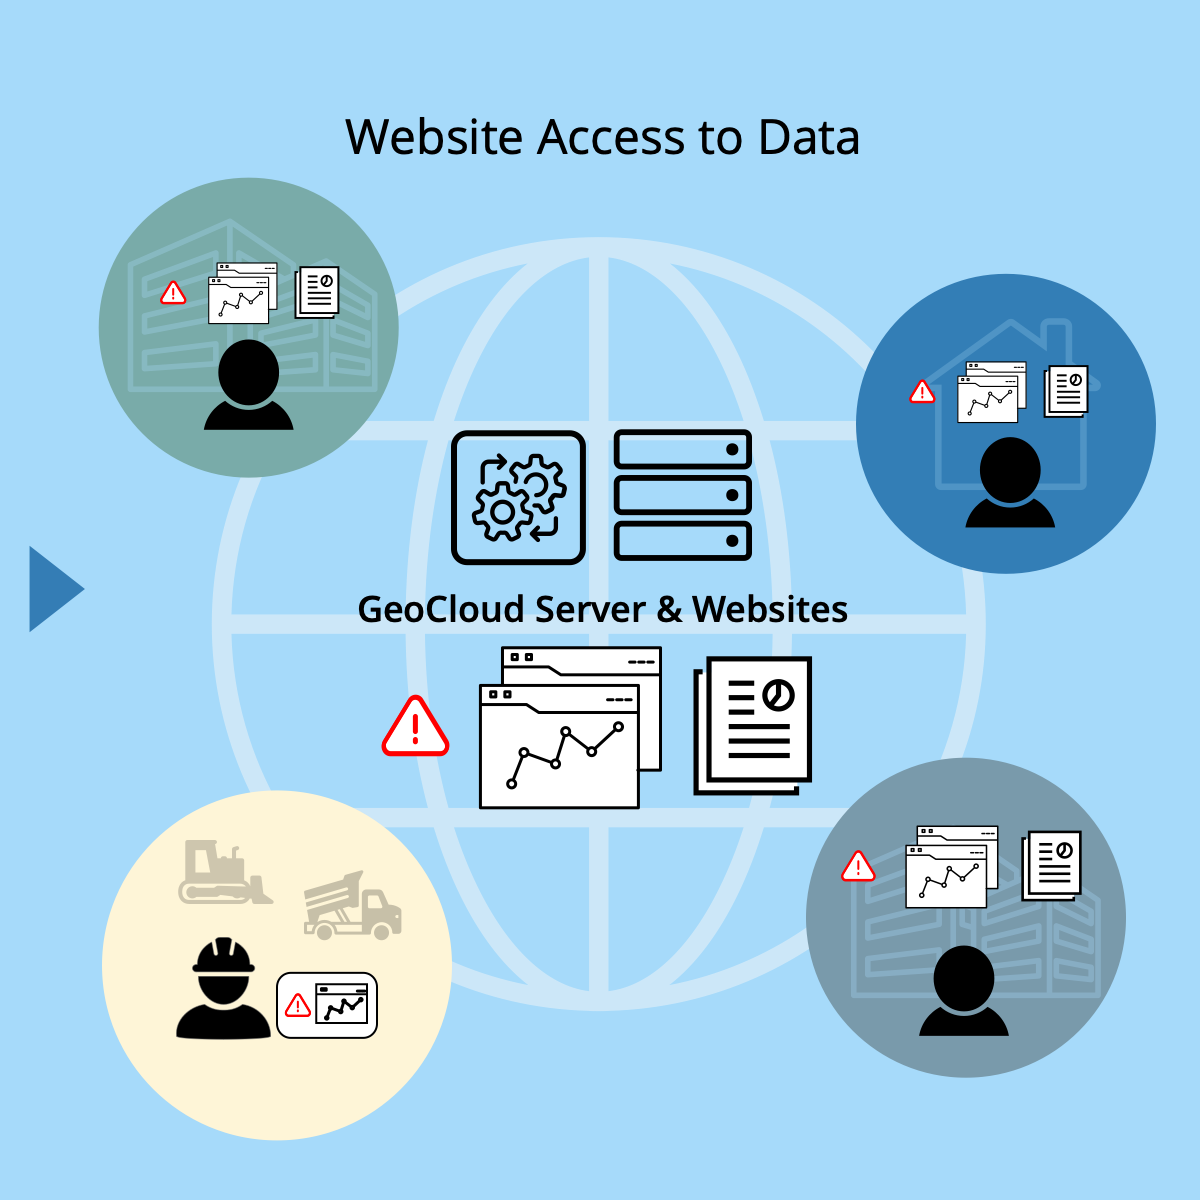 Web Access to Data